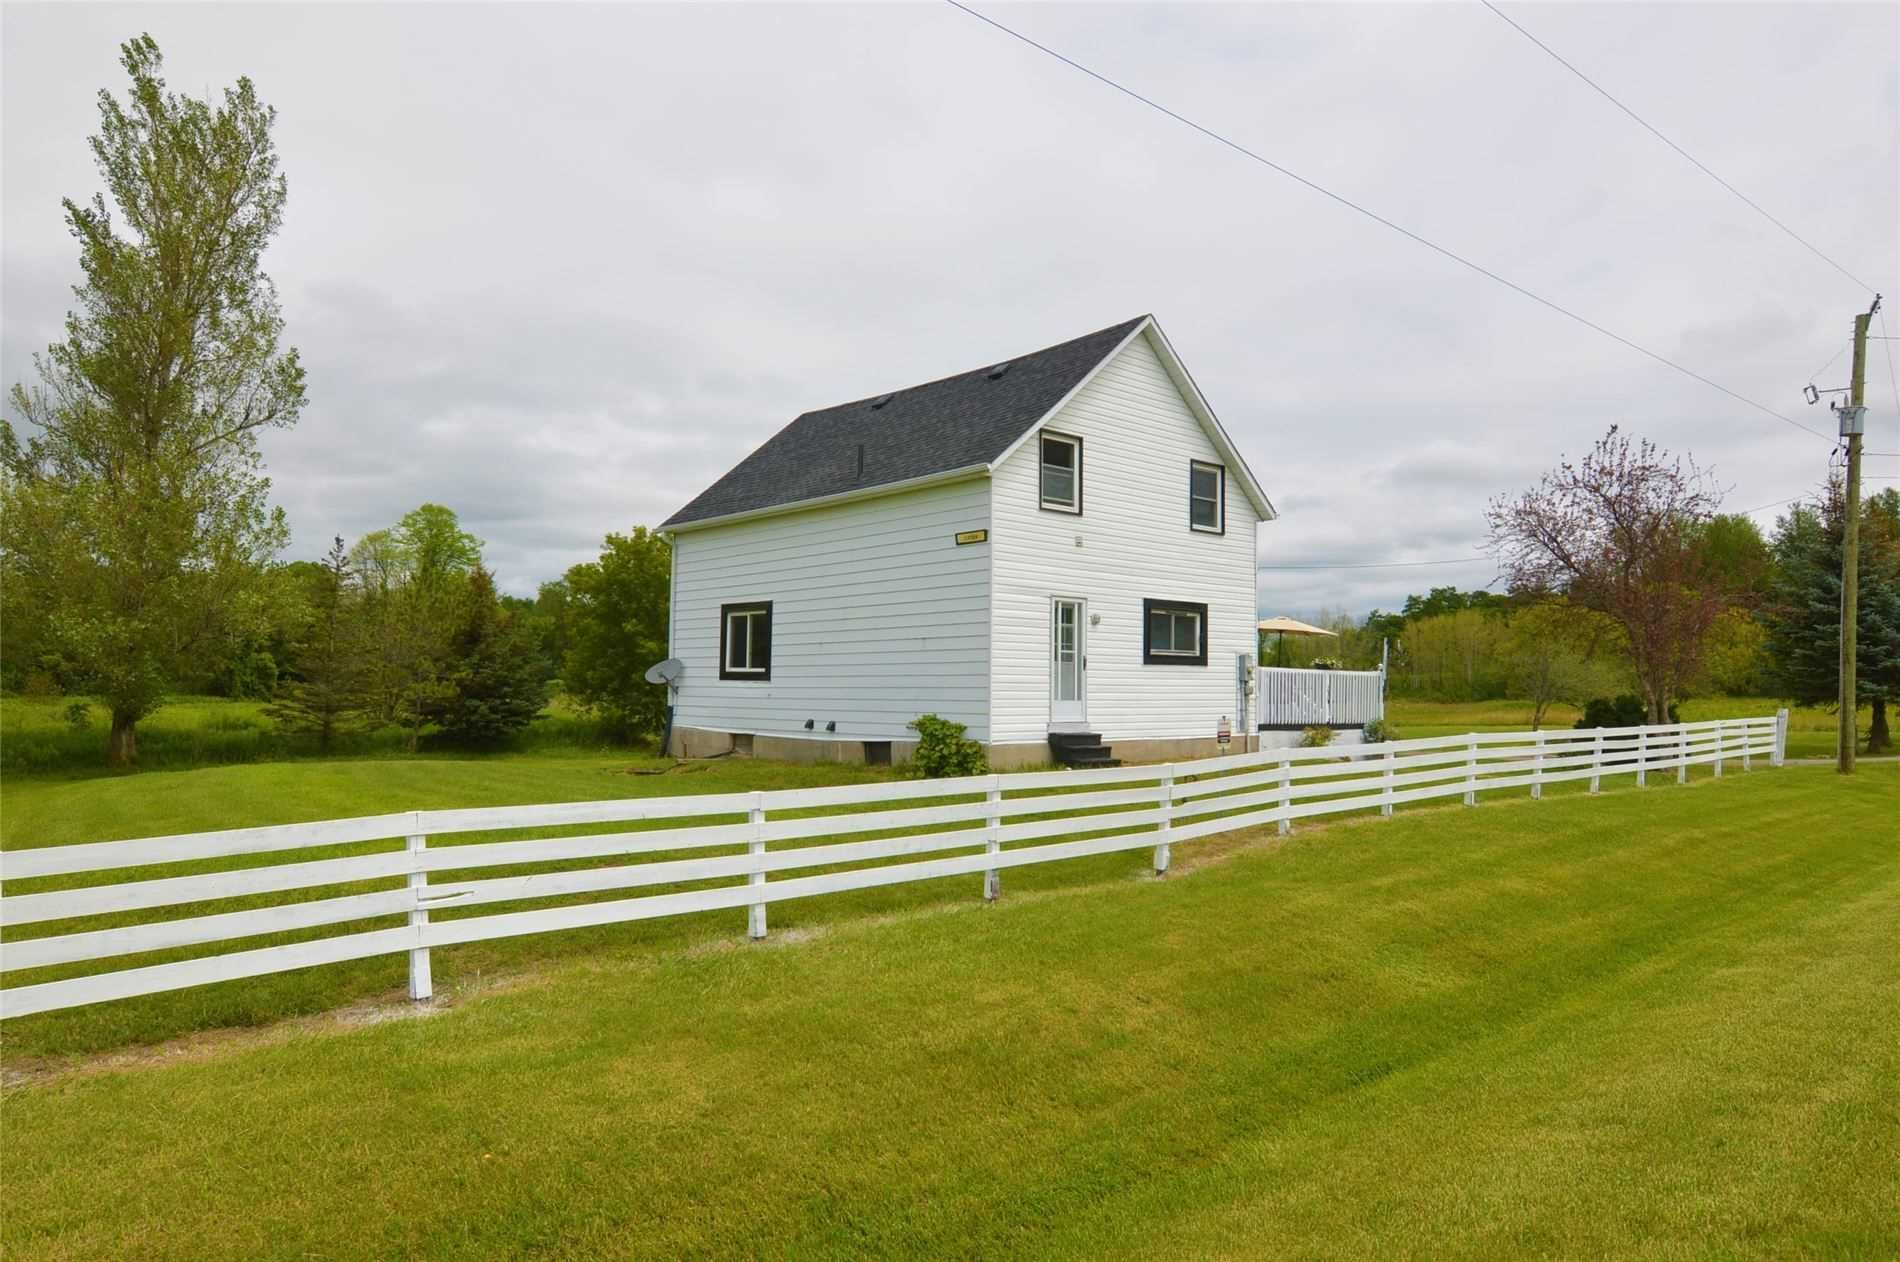 Main Photo: 13984 County 29 Road in Trent Hills: Warkworth House (2-Storey) for sale : MLS®# X5304146